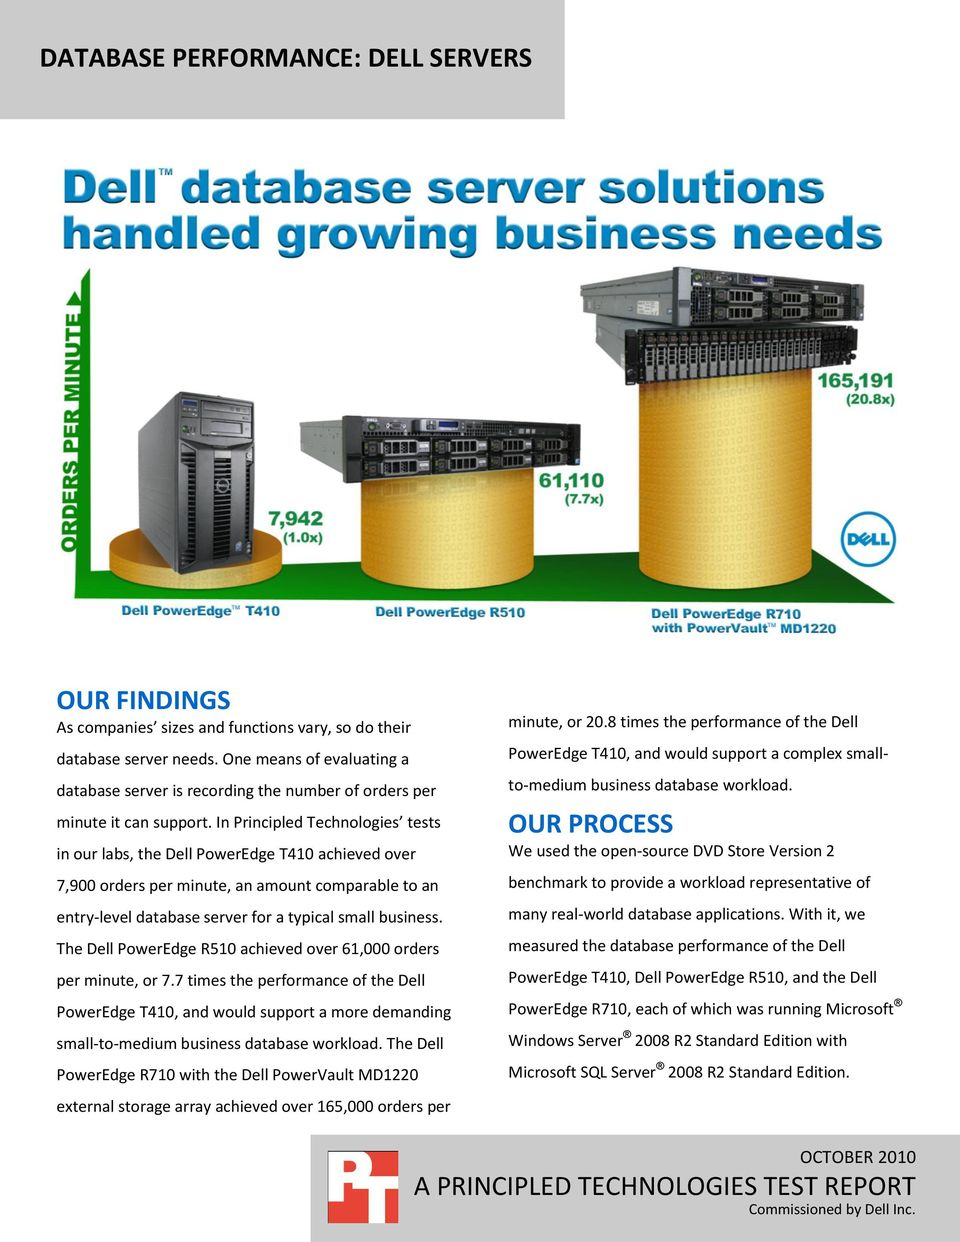 In Principled Technologies tests in our labs, the Dell PowerEdge T410 achieved over 7,900 orders per minute, an amount comparable to an entry-level database server for a typical small business.